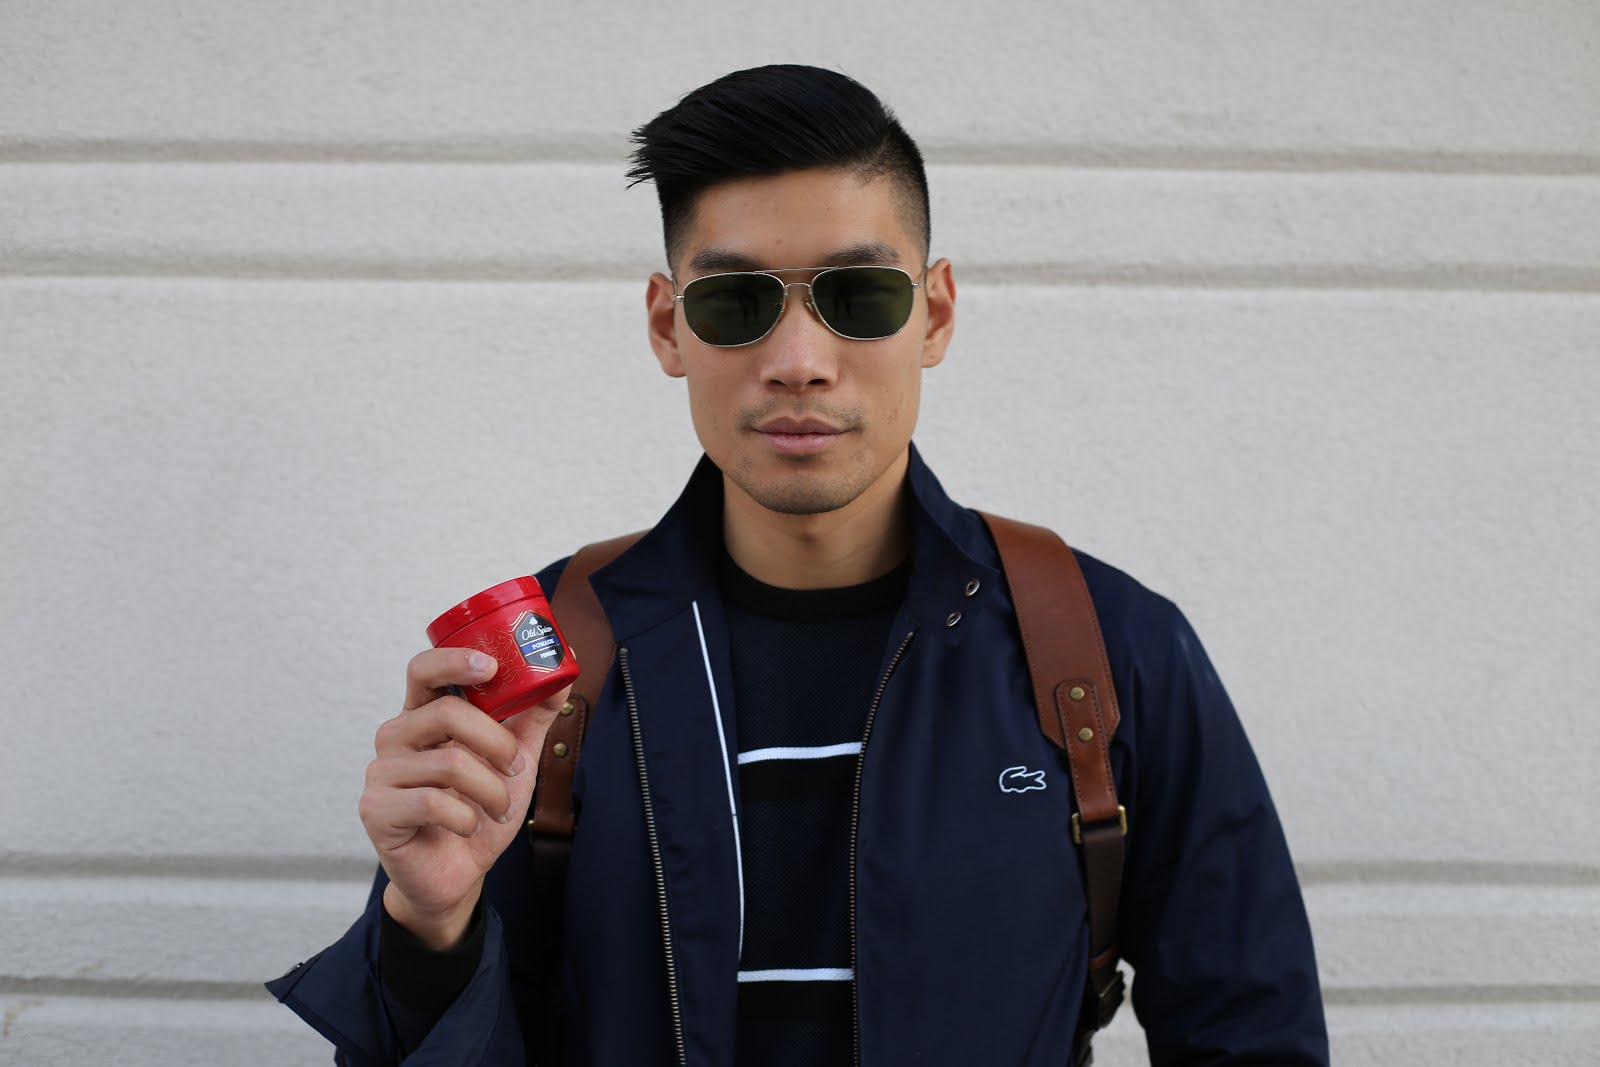 Levitate Style, Menswear Blogger, with Old Spice